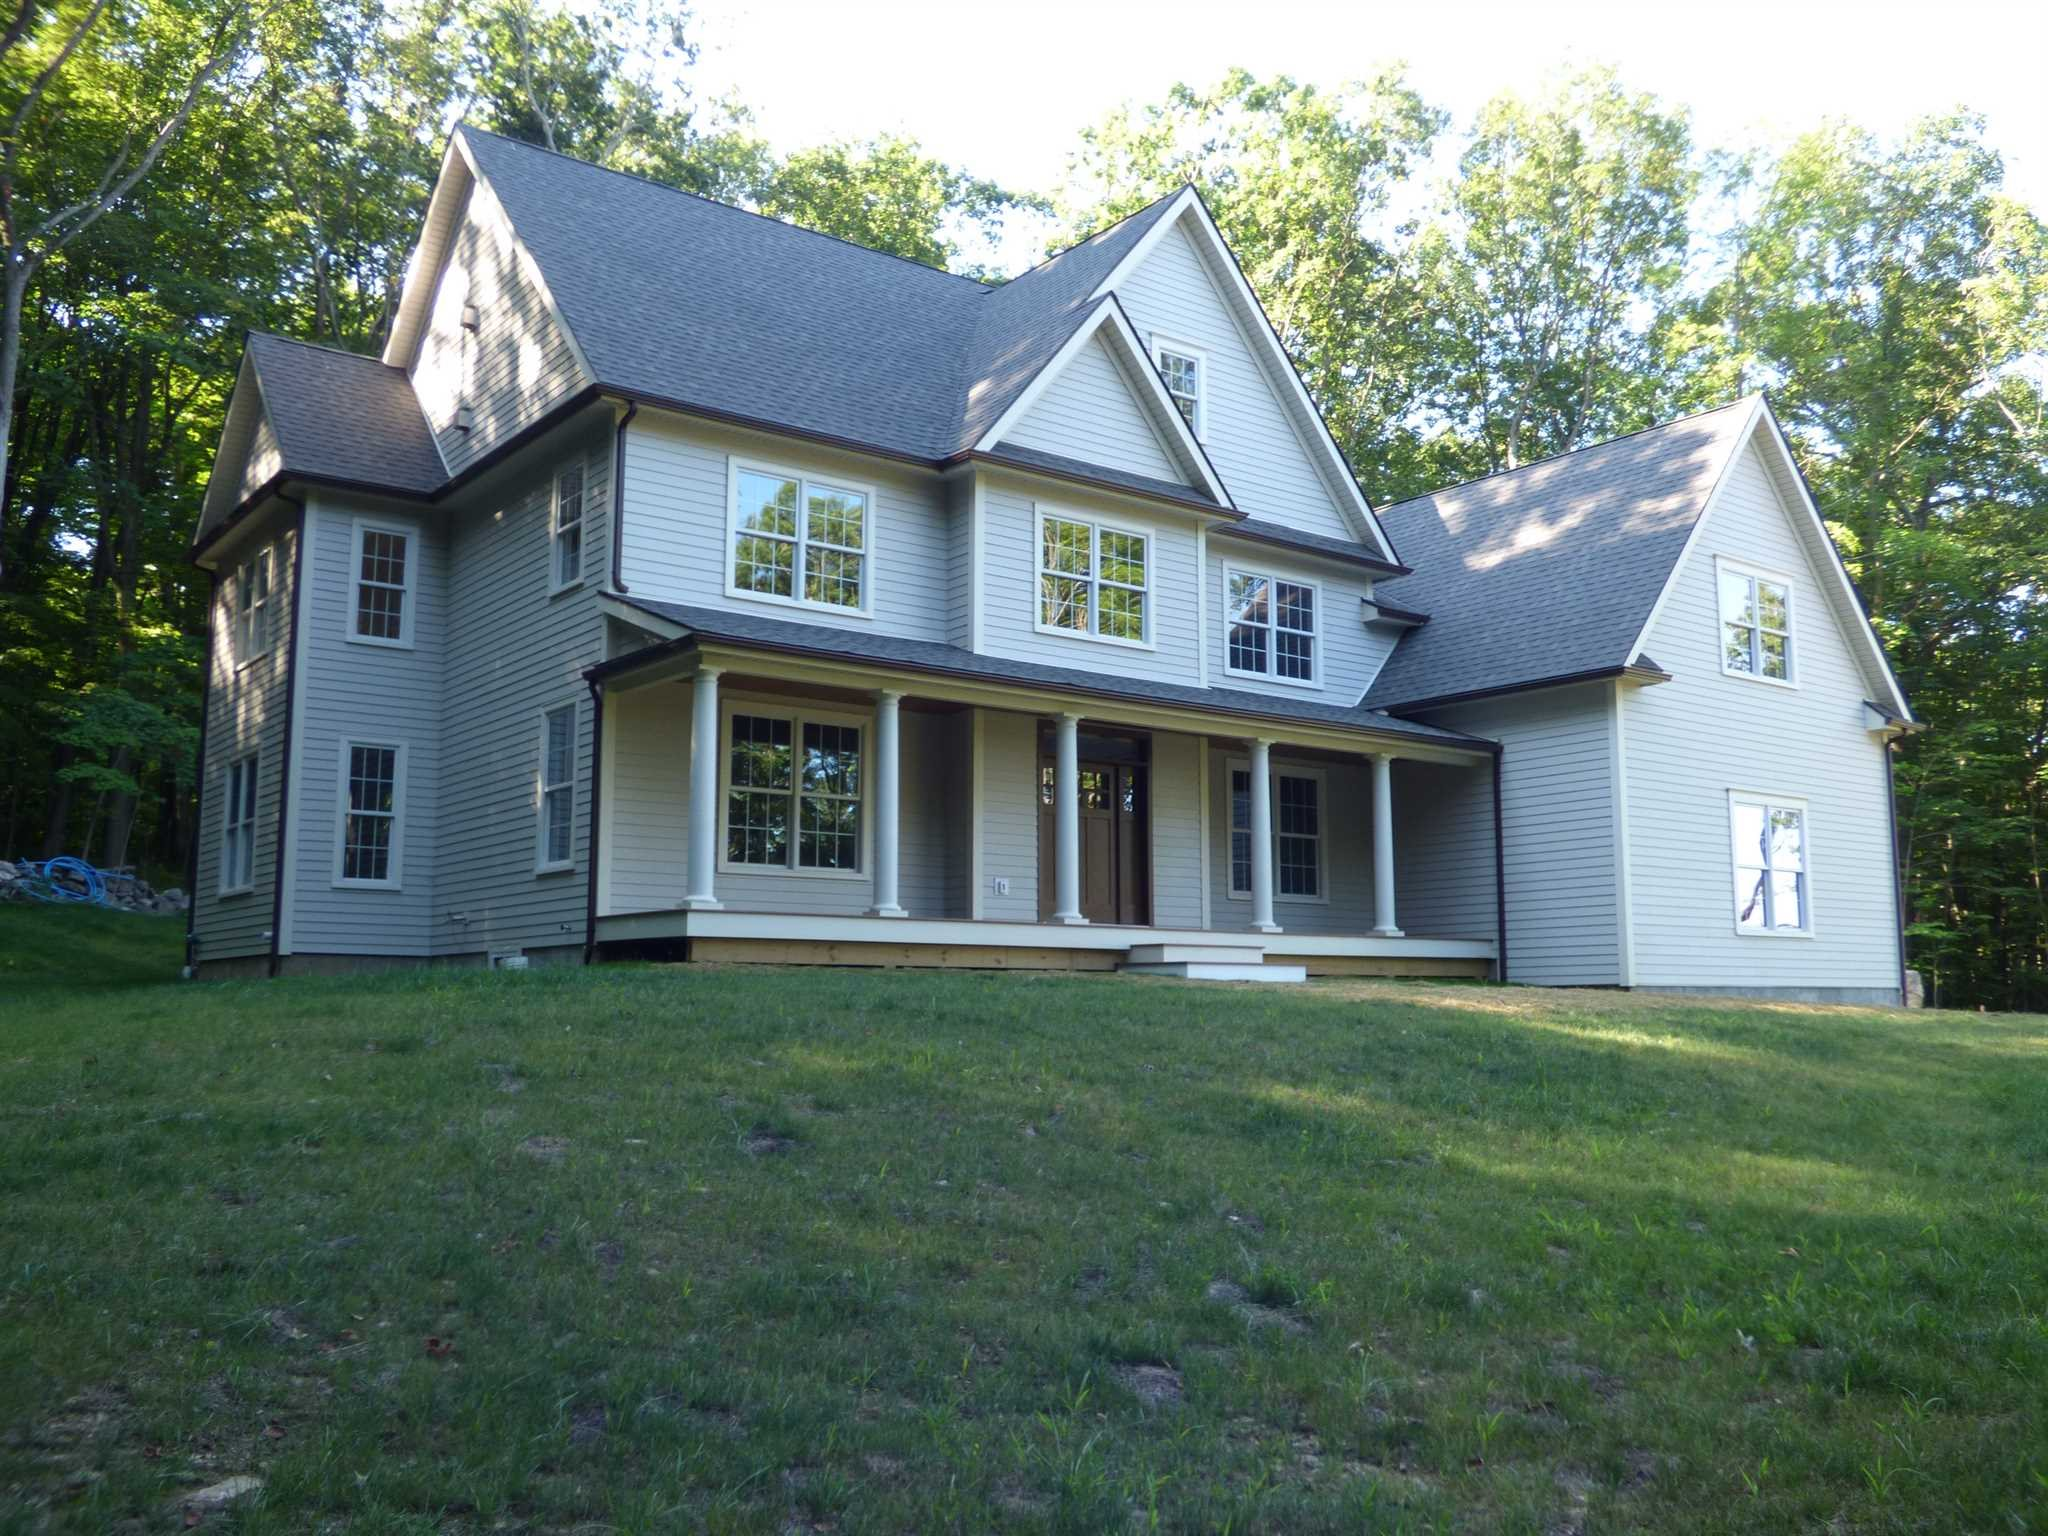 Single Family Home for Sale at 20 SHERWOOD HILL 20 SHERWOOD HILL Southeast, New York 10509 United States